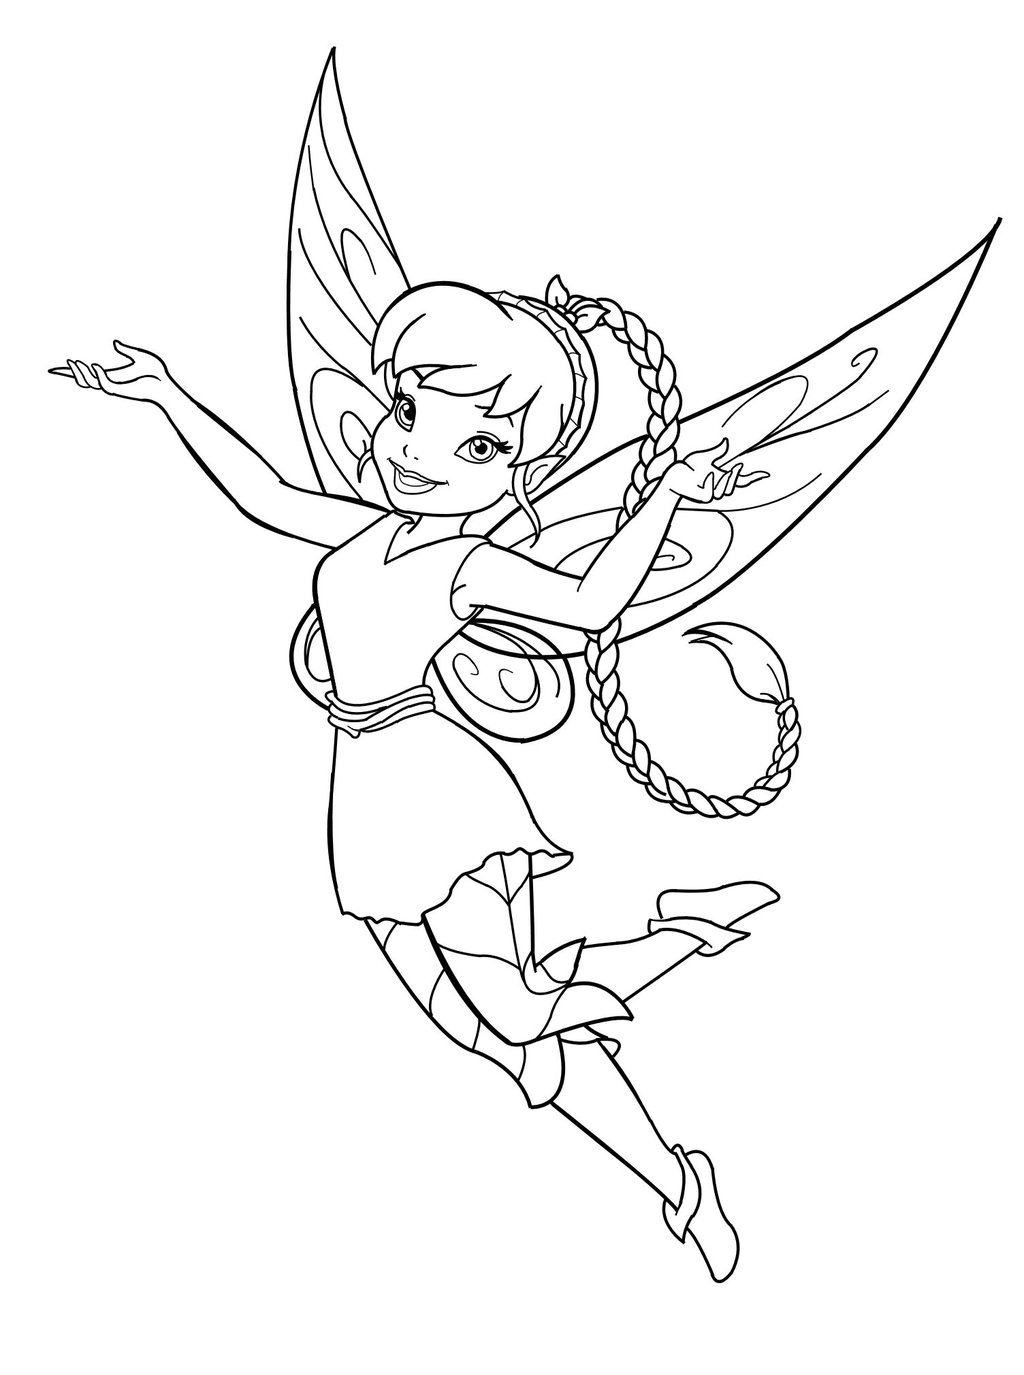 printable fairy coloring pages free printable fairy coloring pages for kids pages printable coloring fairy 1 1